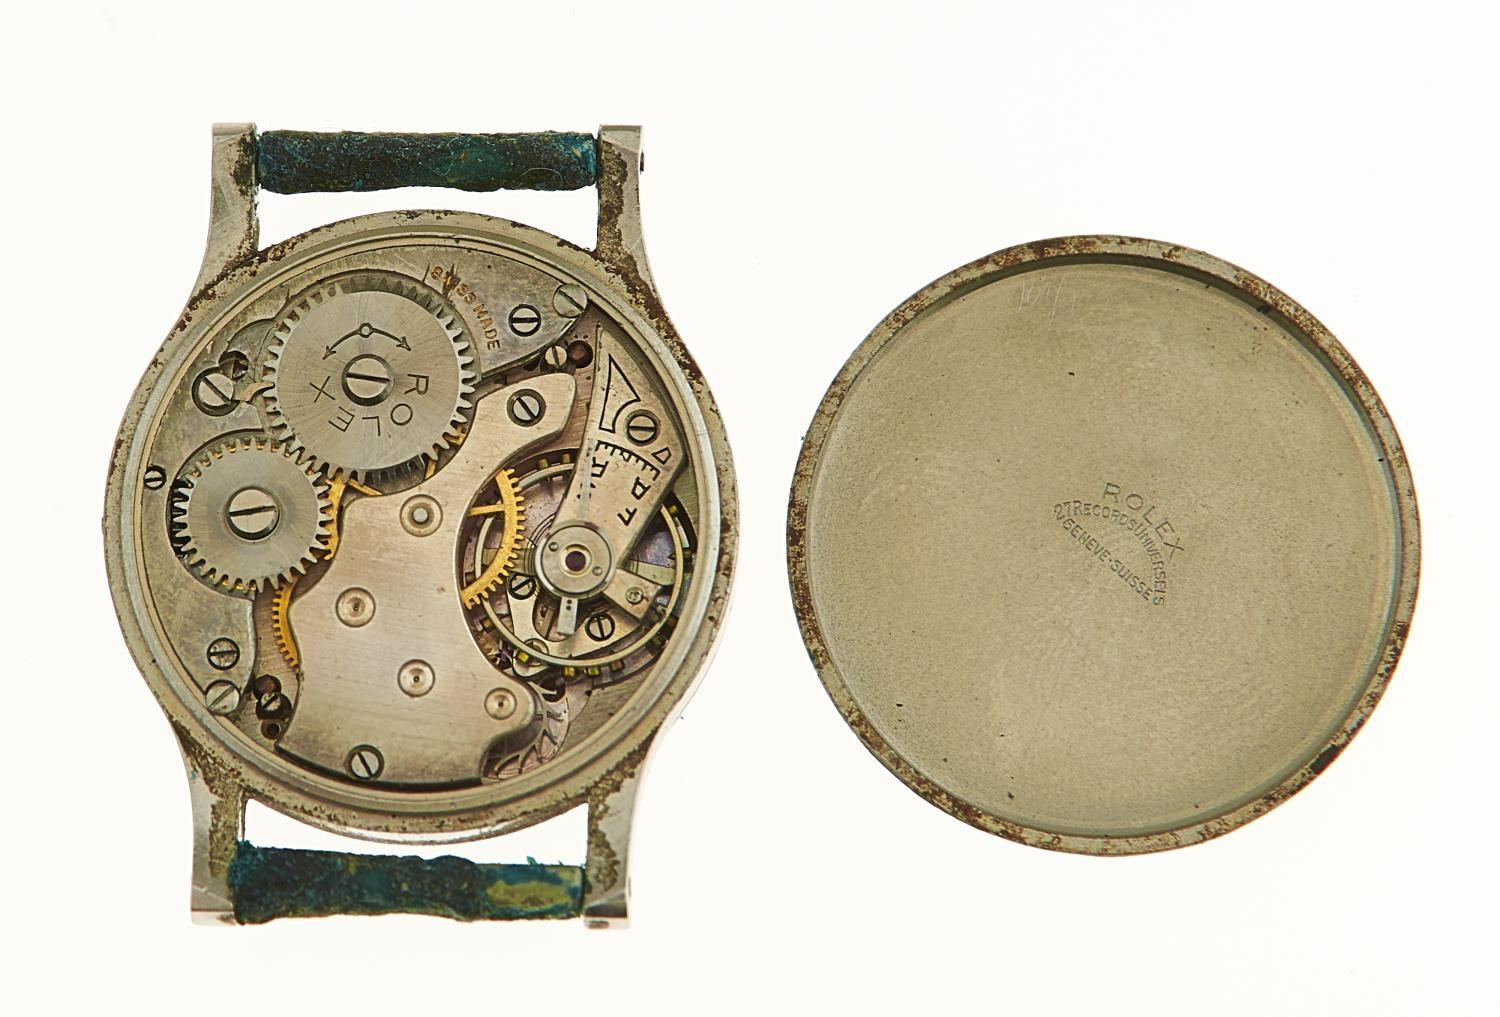 A ROLEX STAINLESS STEEL GENTLEMAN'S WRISTWATCH, 32MM, MARKED INSIDE CASEBACK ROLEX 27 RECORDS - Image 2 of 2